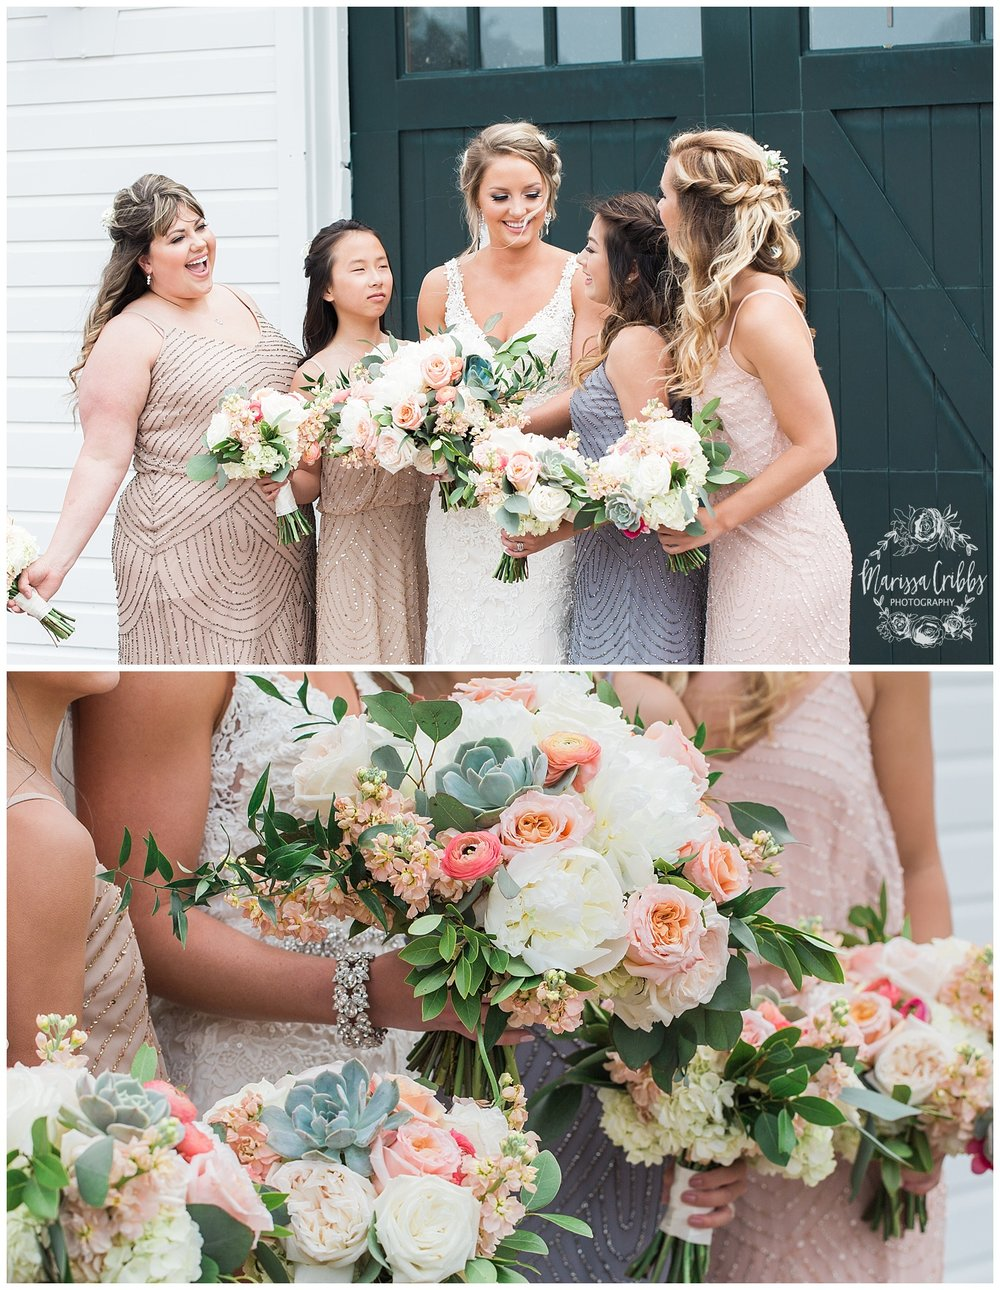 CHELSEY & TRAVIS MARRIED | MILDALE FARM WEDDING | KC WEDDING PHOTOGRAPHERS | MARISSA CRIBBS PHOTOGRAPHY_1258.jpg